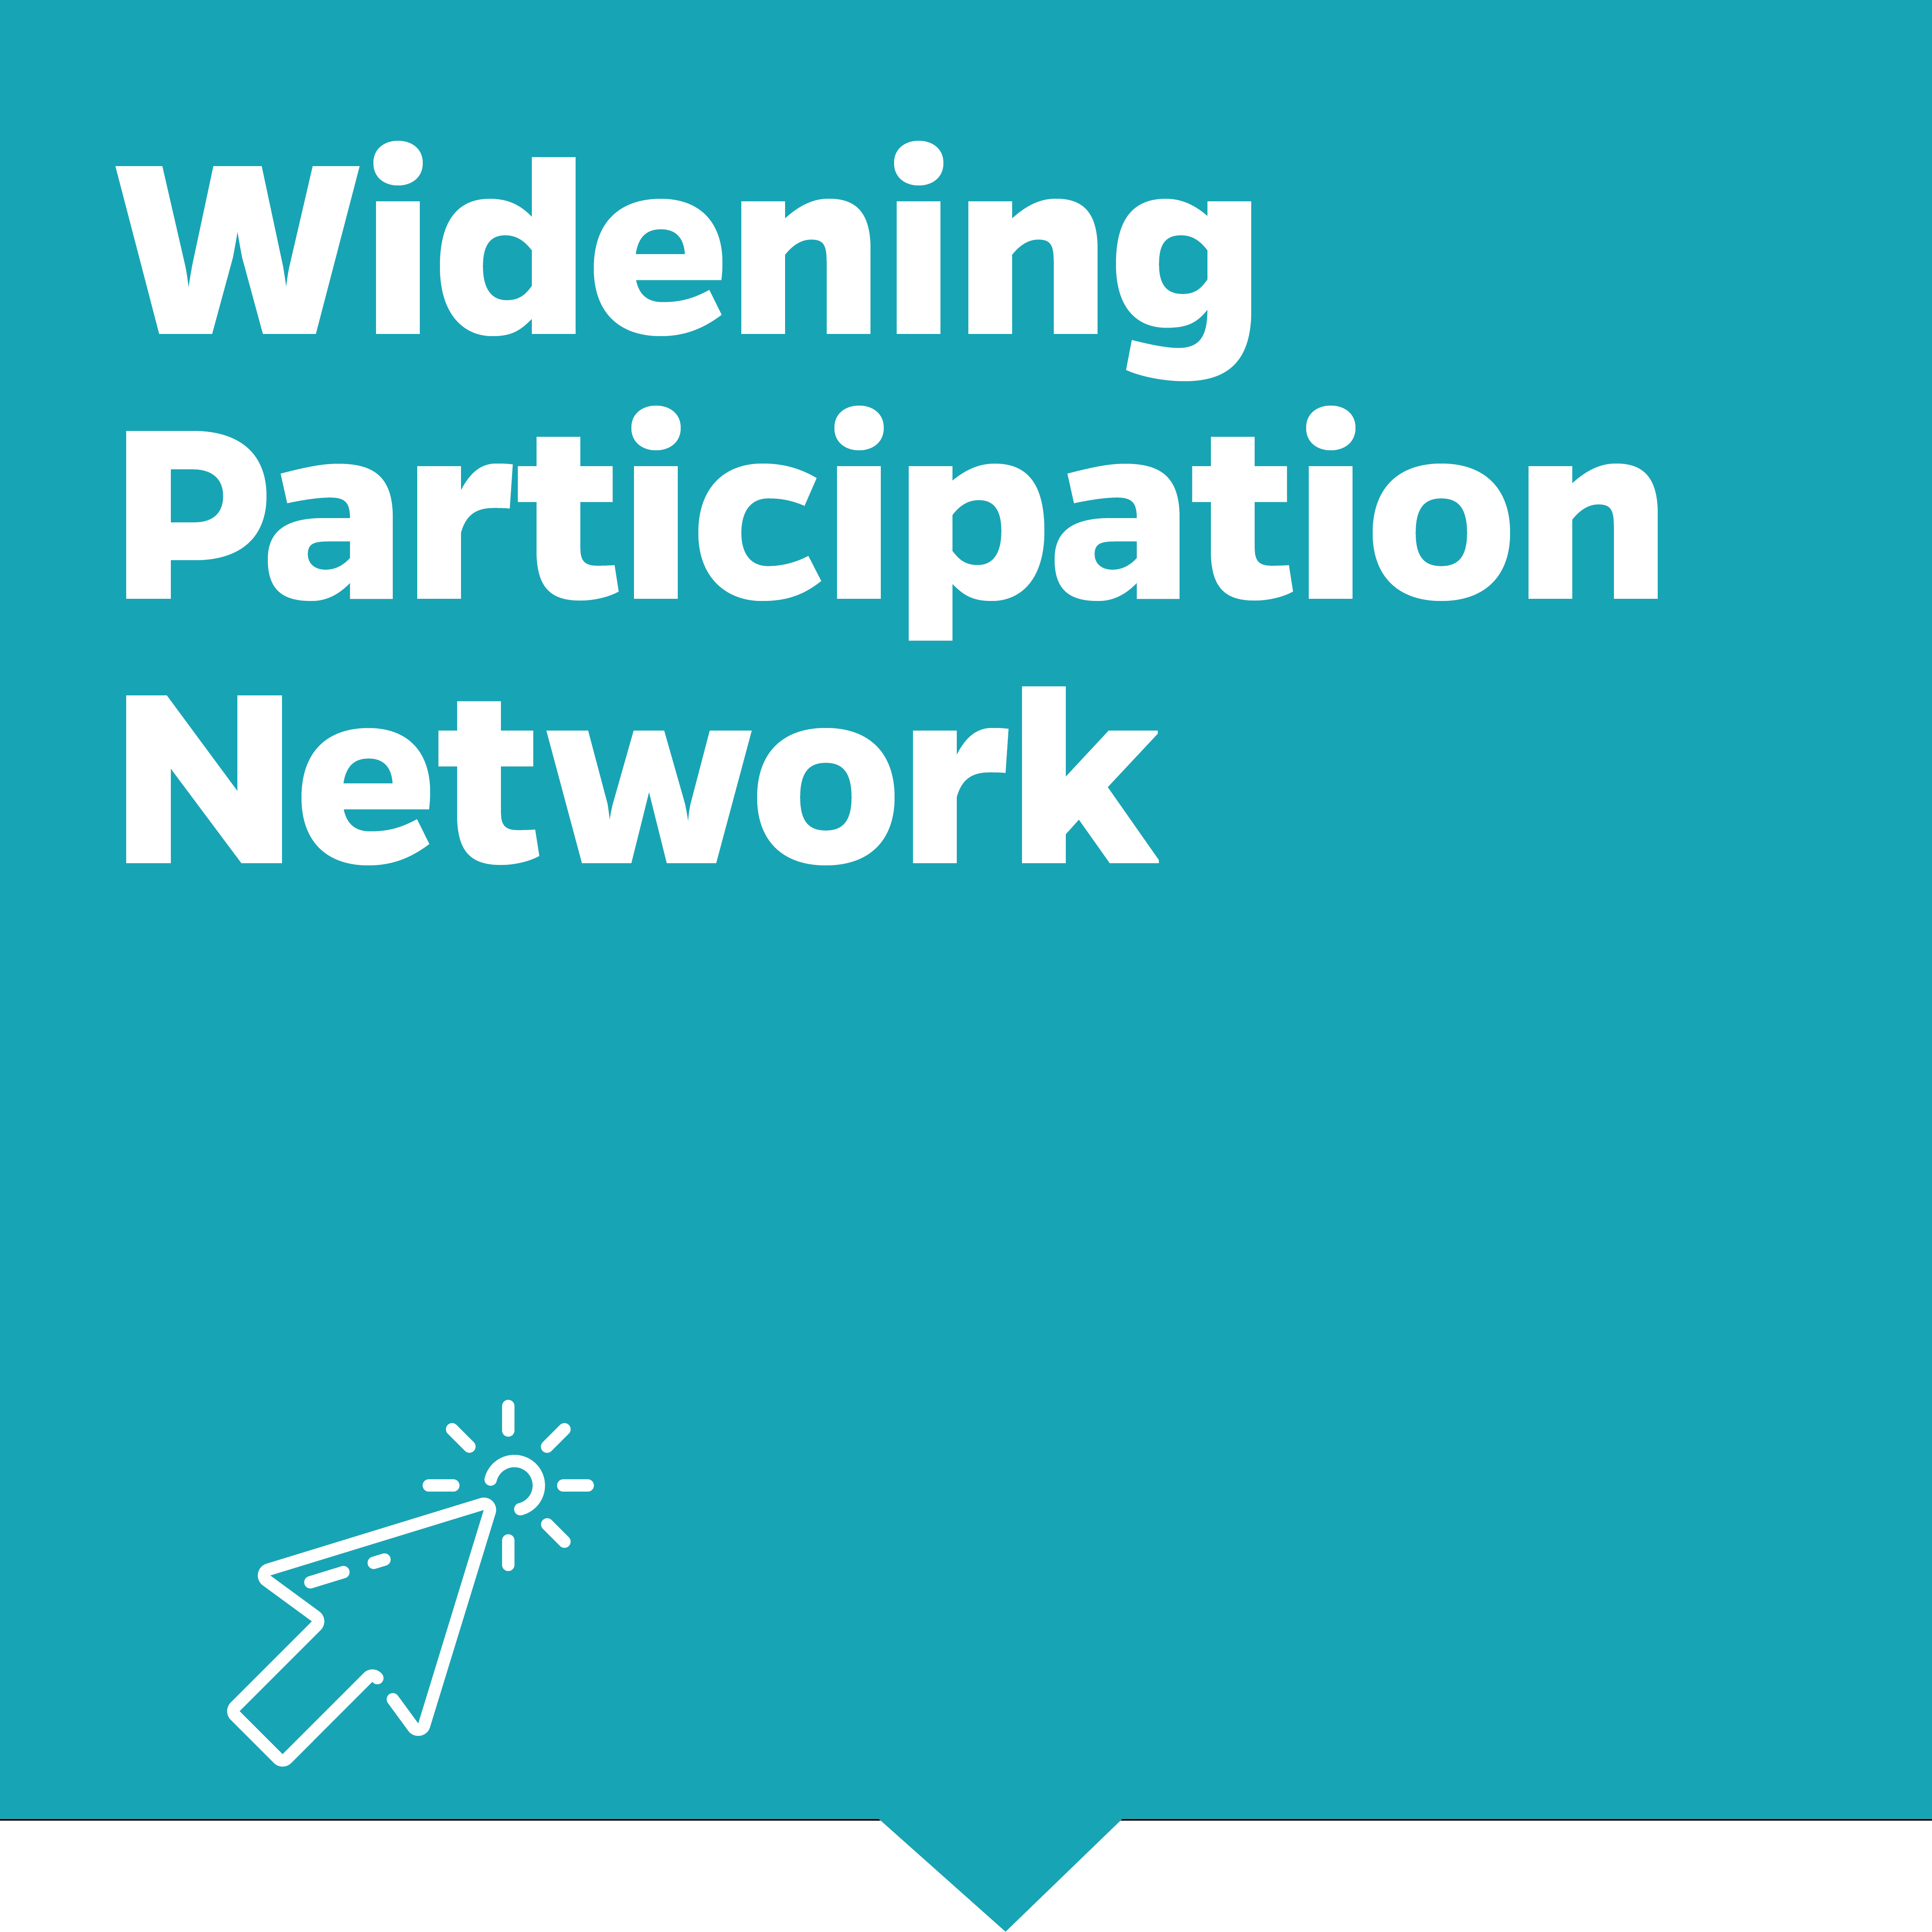 The Widening Participation Network